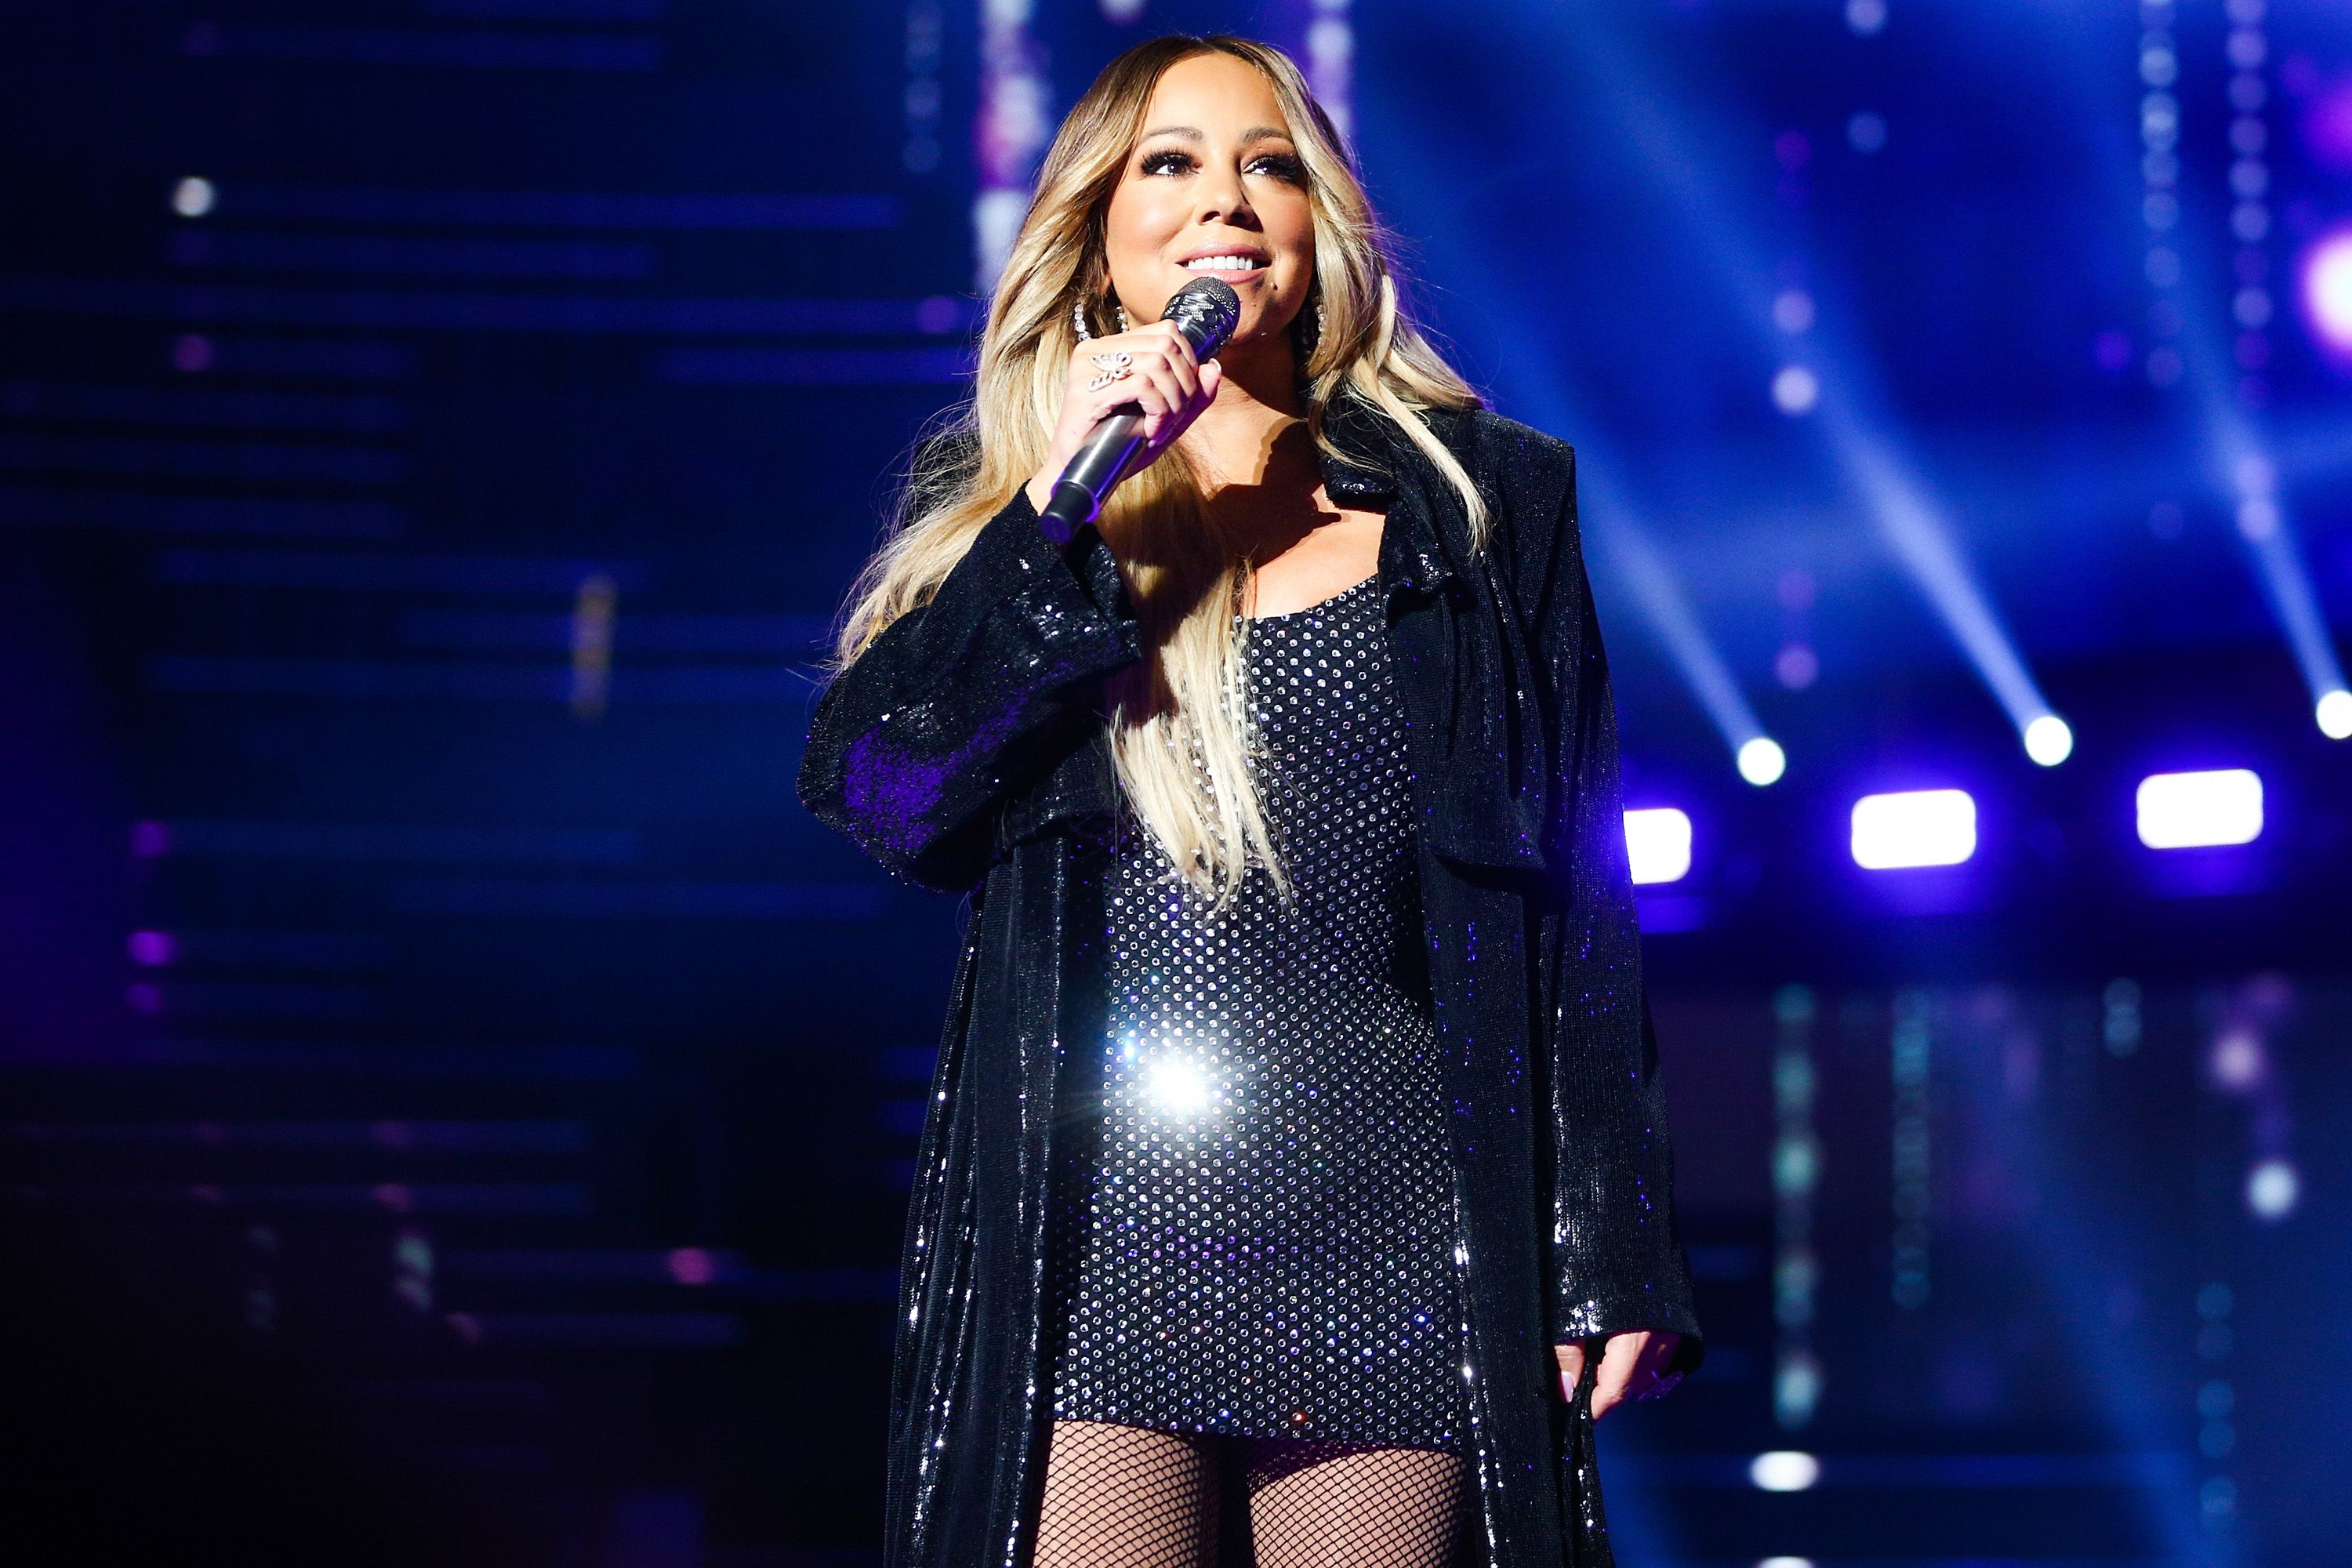 Mariah Carey performs on-stage at a concert | Source: Getty Images/GlobalImagesUkraine